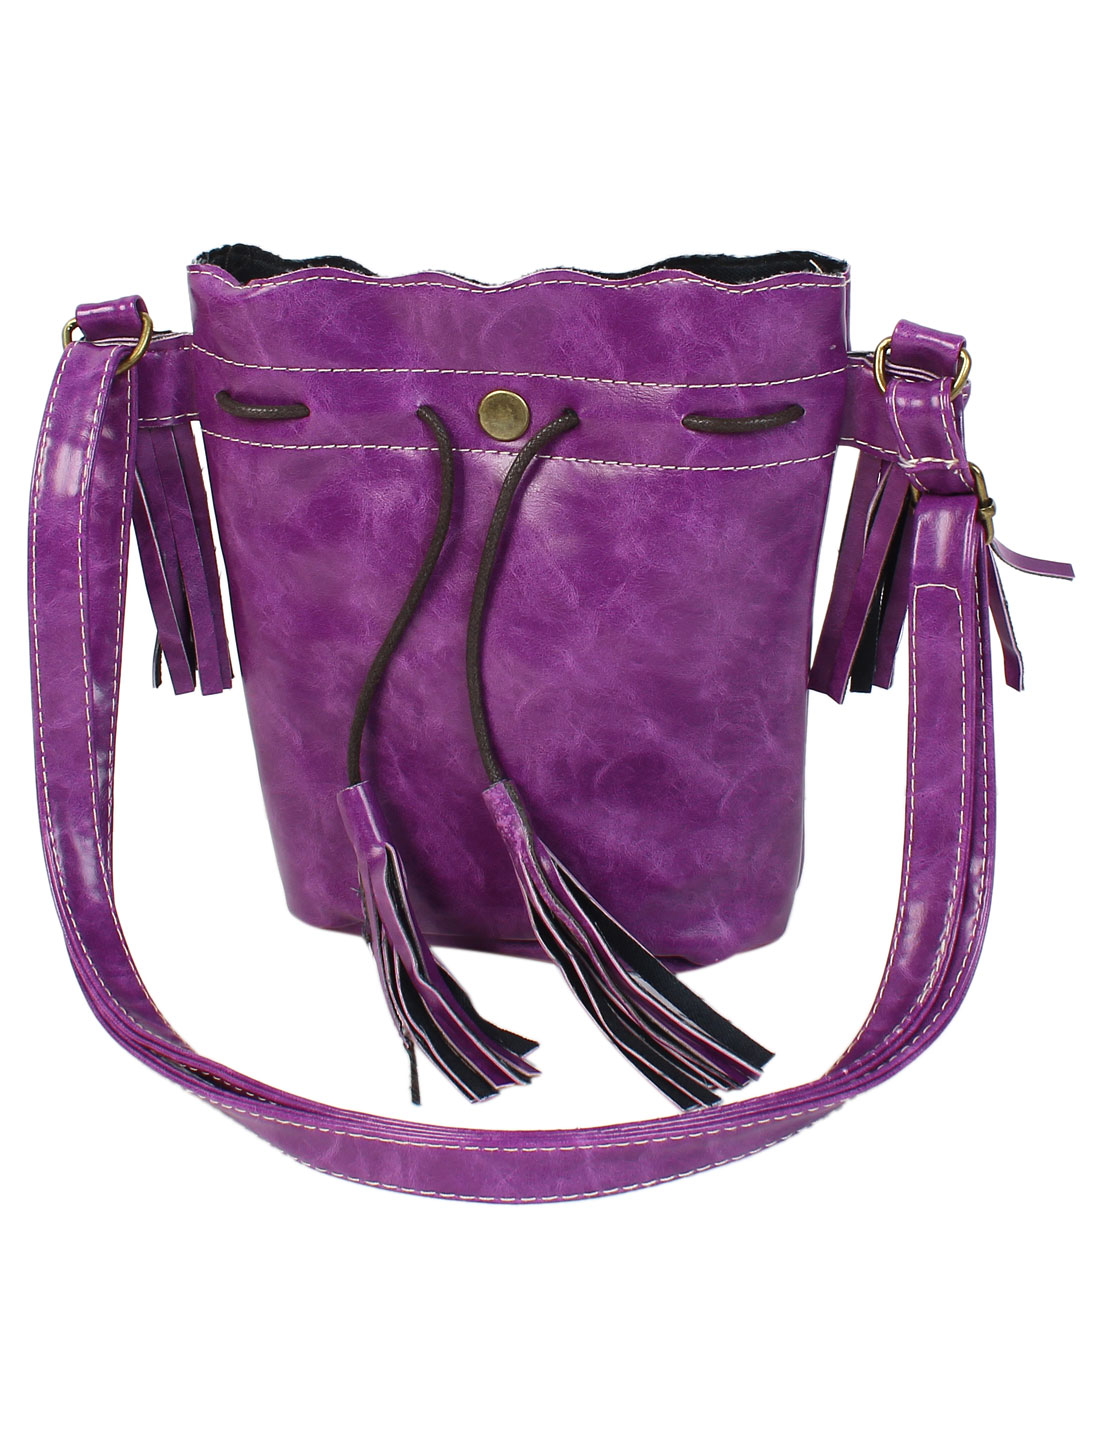 New Tassel Handbag Women Shoulder Messenger Hobo Bag Purse Satchel Purple